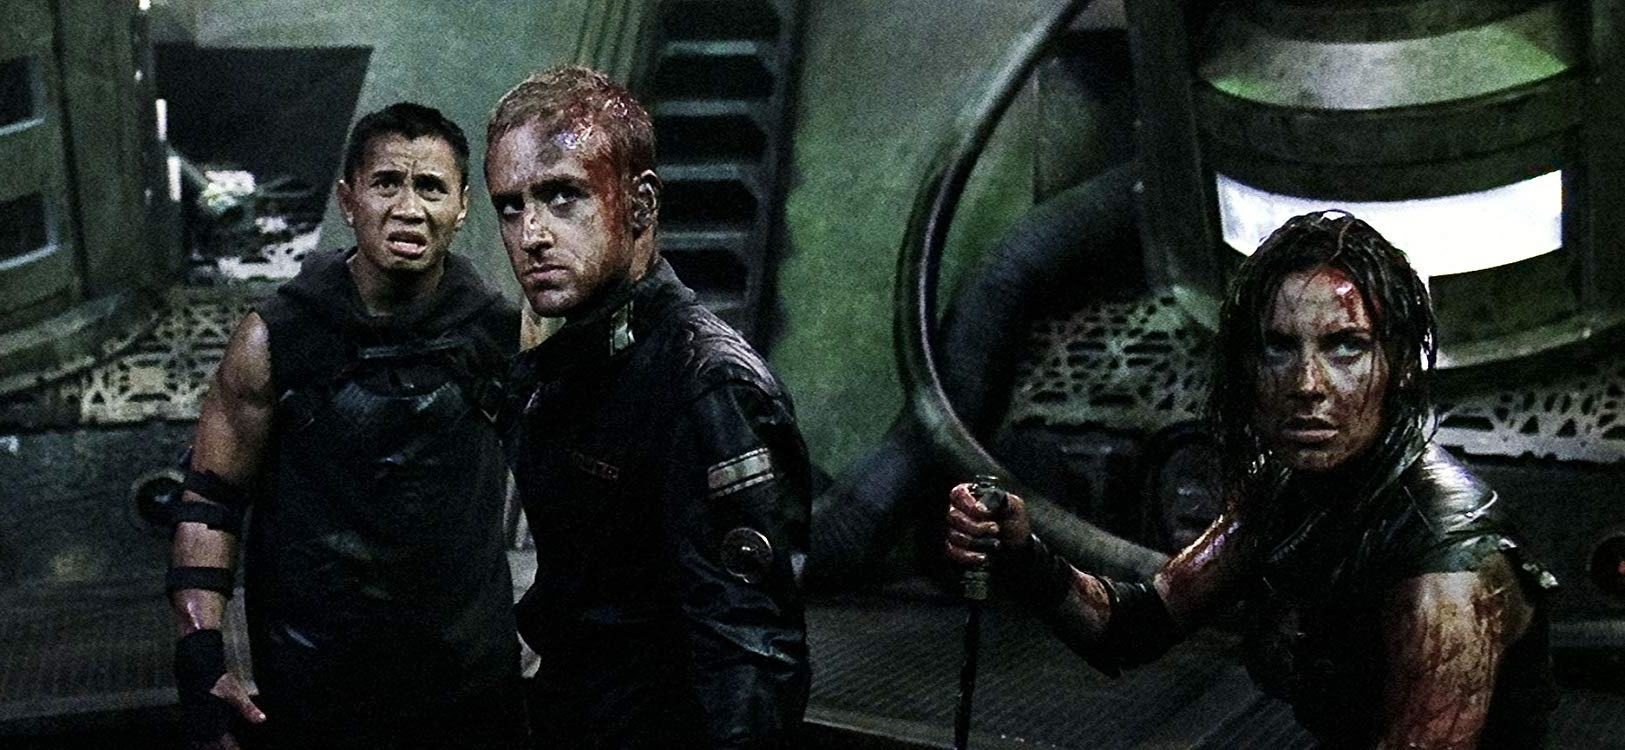 Survivors aboard The Elysium - (l to r) Cung Le, Ben Foster and Antje Traue in Pandorum (2009)